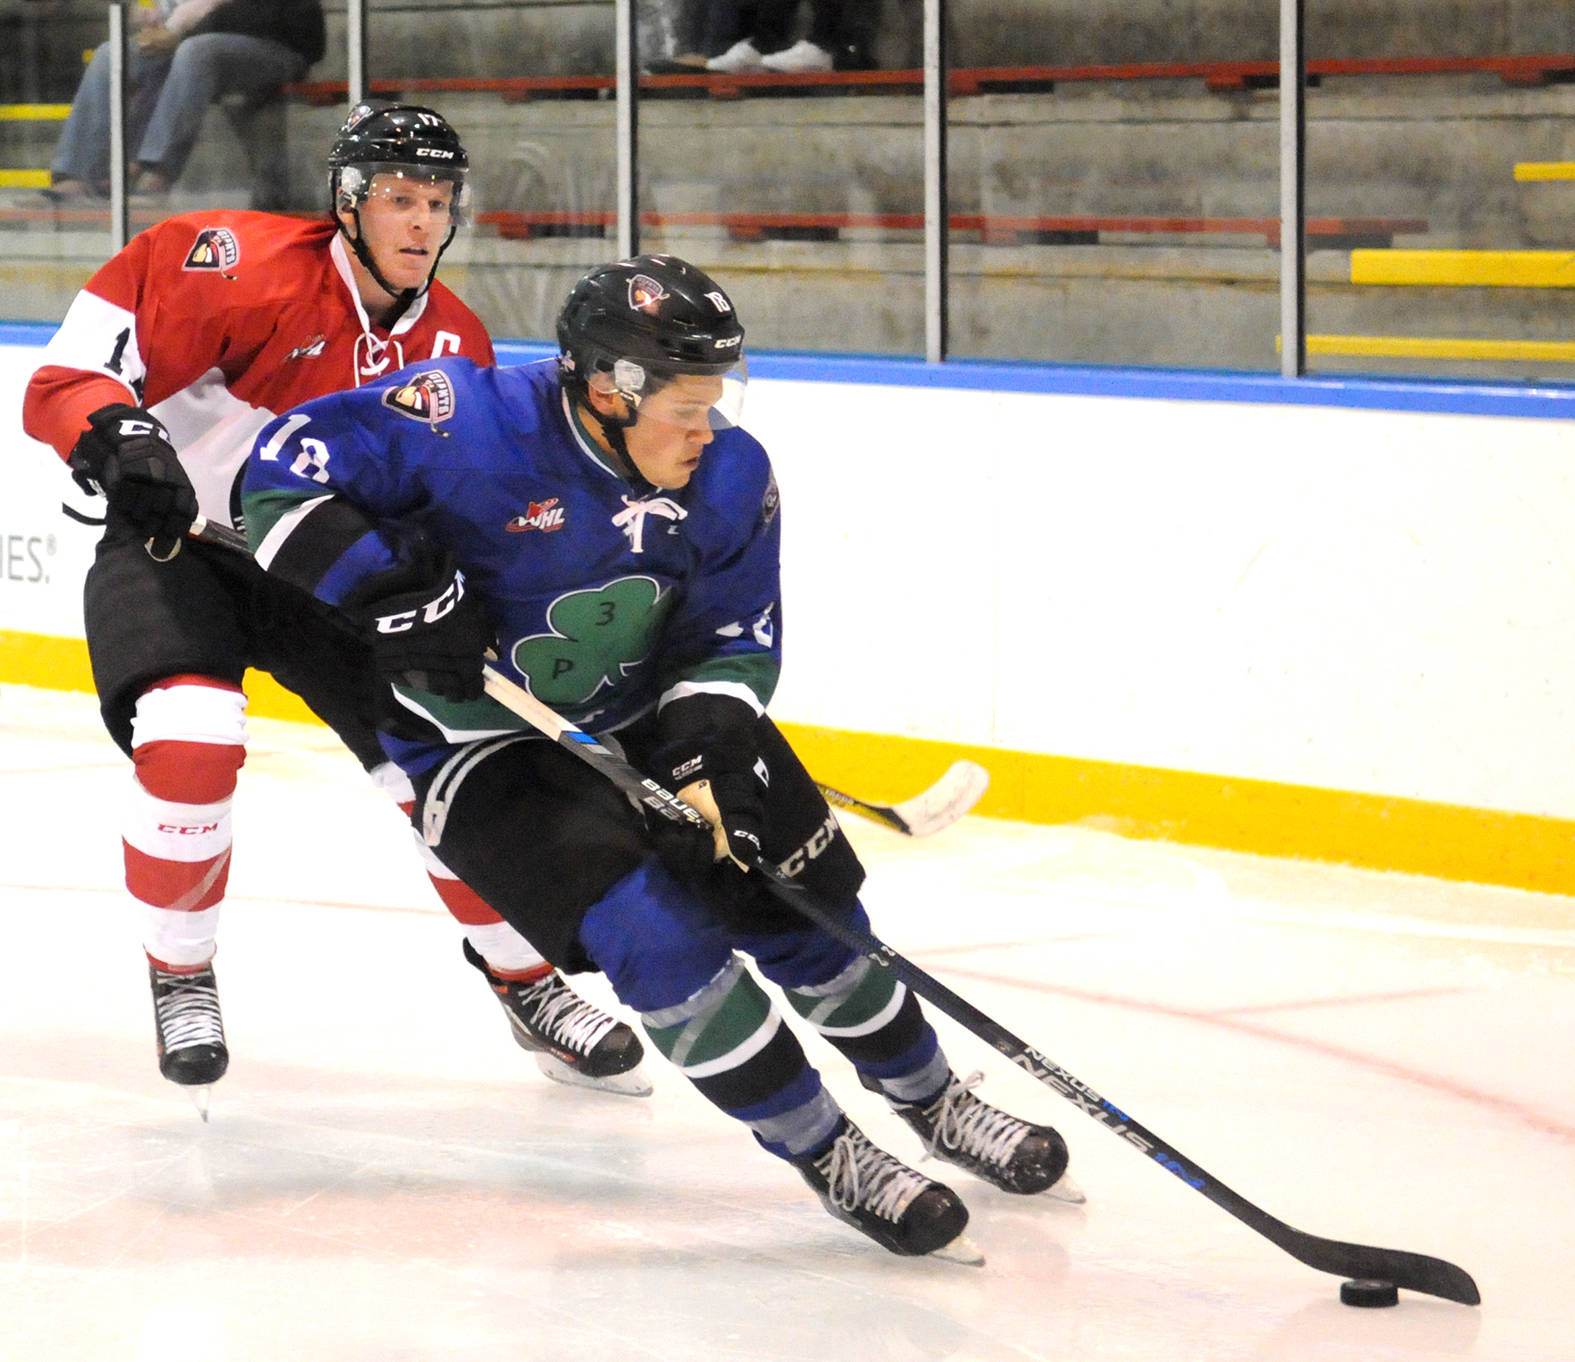 Jack Flaman (blue) is pursued by Tyler Benson during last year's Quinn/Howe Top Prospects Game during Vancouver Giants training camp. Benson is hoping to bounce back after missing the second half of last season while Flaman aims for one of three over-age spots on this year's Giants team. Gary Ahuja Langley Times file photo